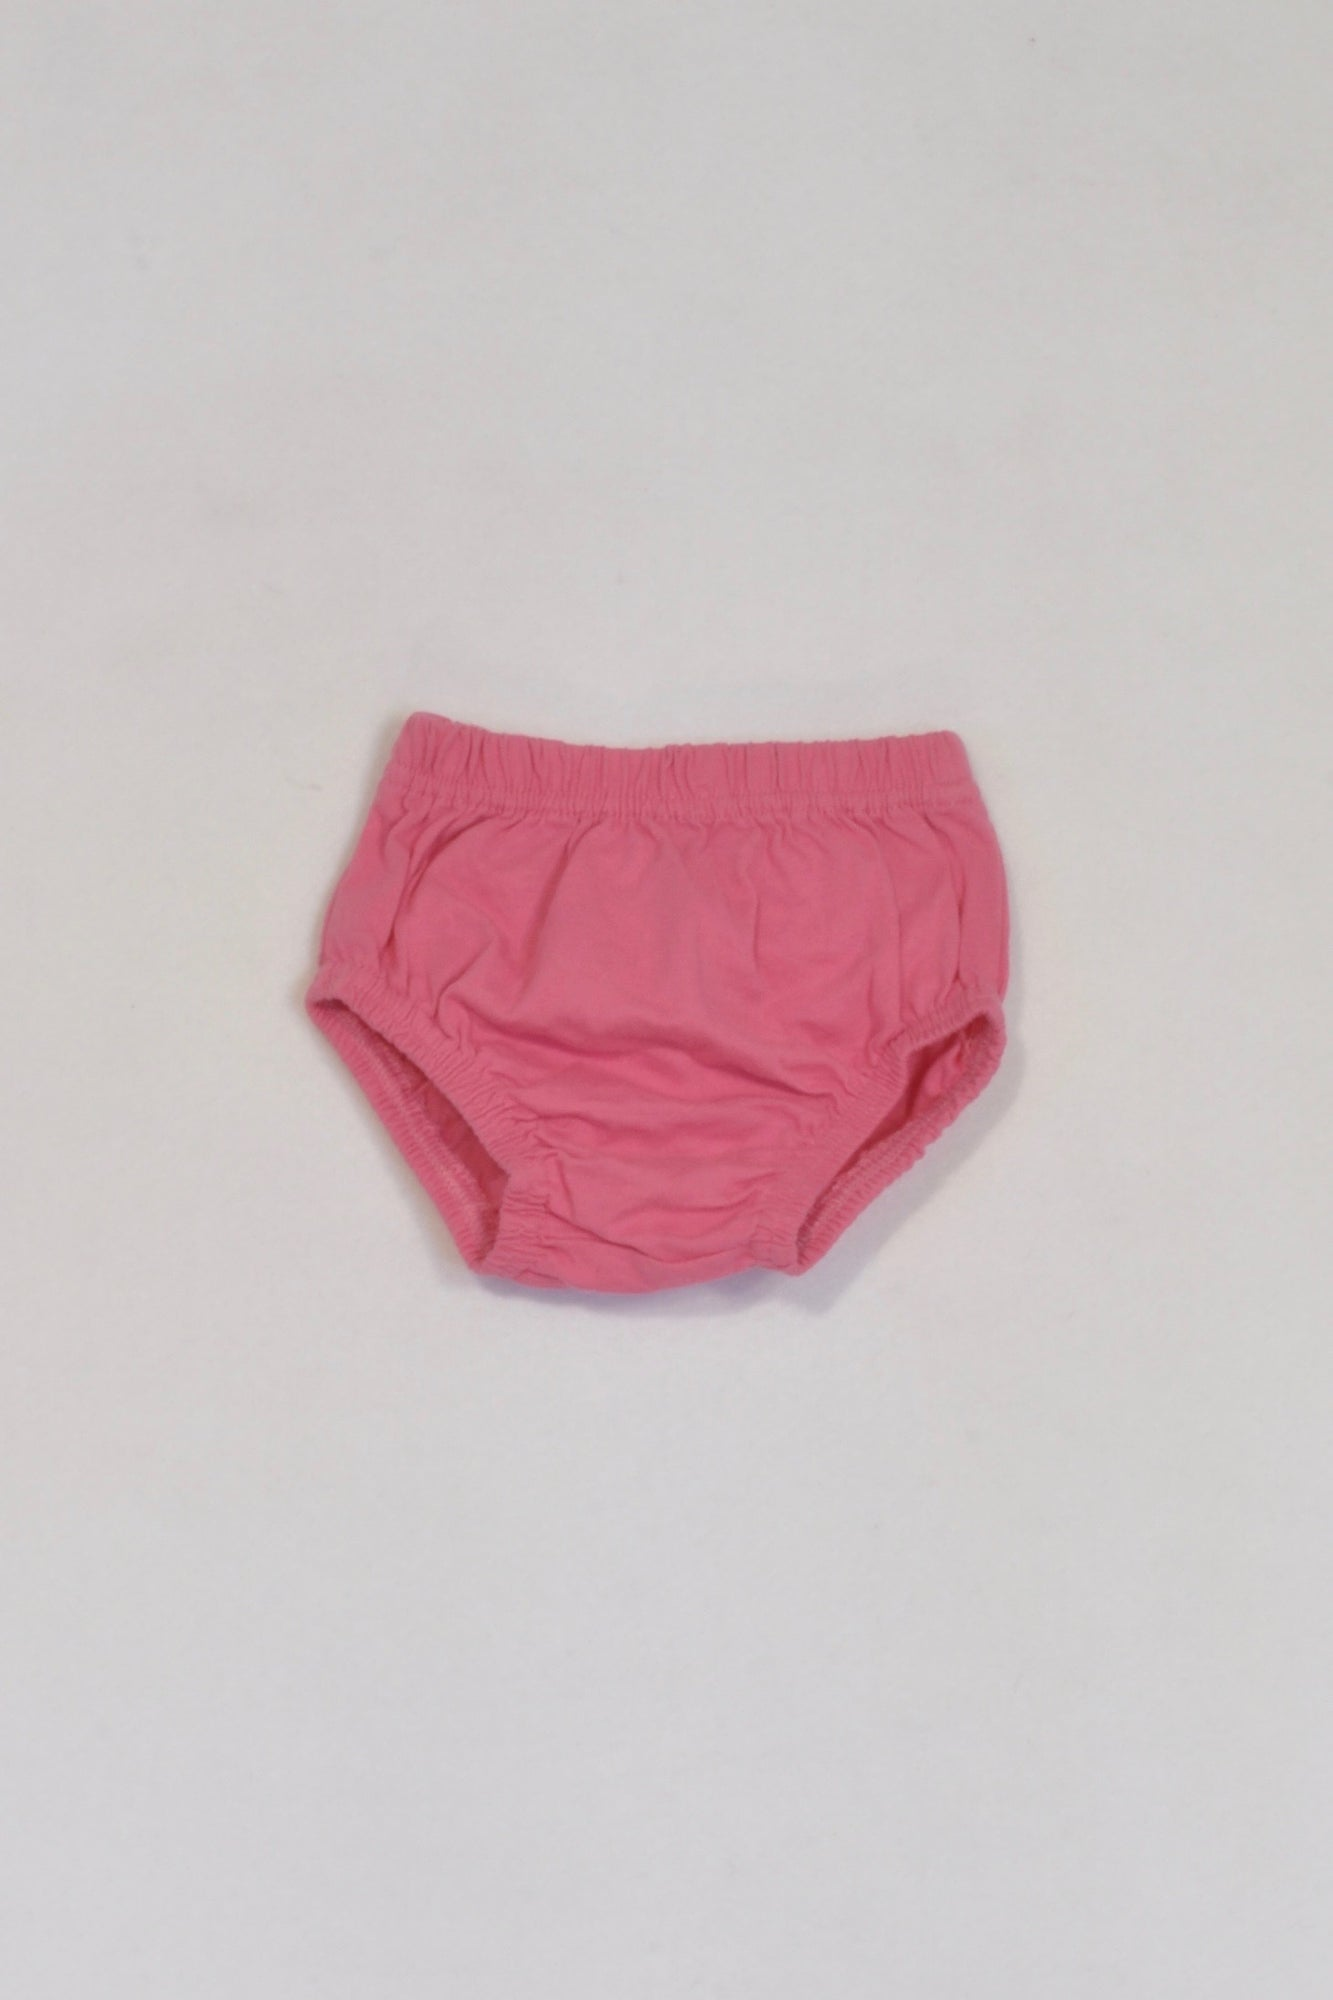 Ackermans Rose Pink Bloomers Girls 0-3 months